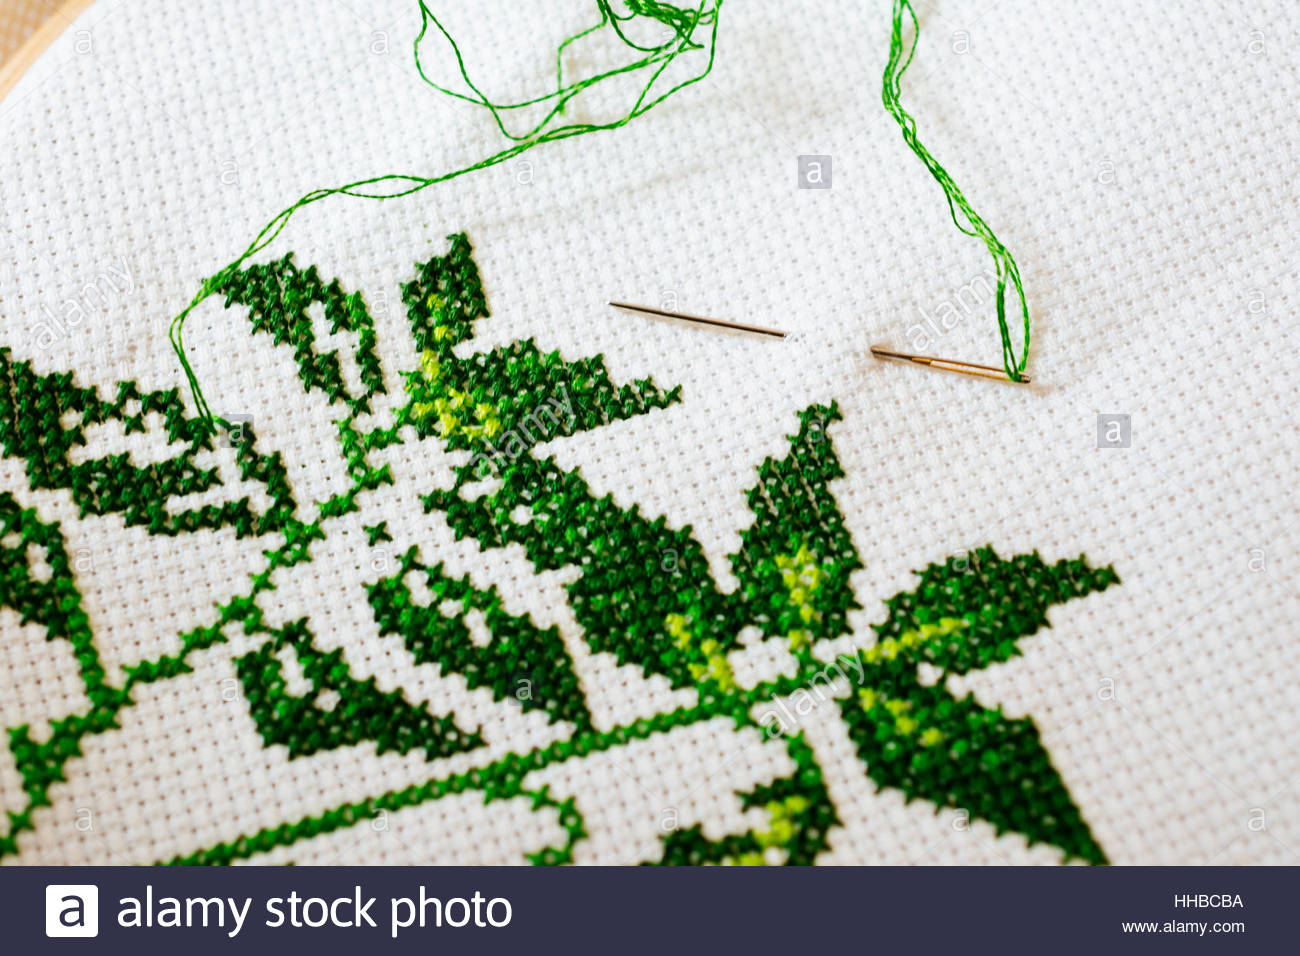 cross-stitch-is-a-popular-form-of-counted-thread-embroidery-in-which-HHBCBA.jpg